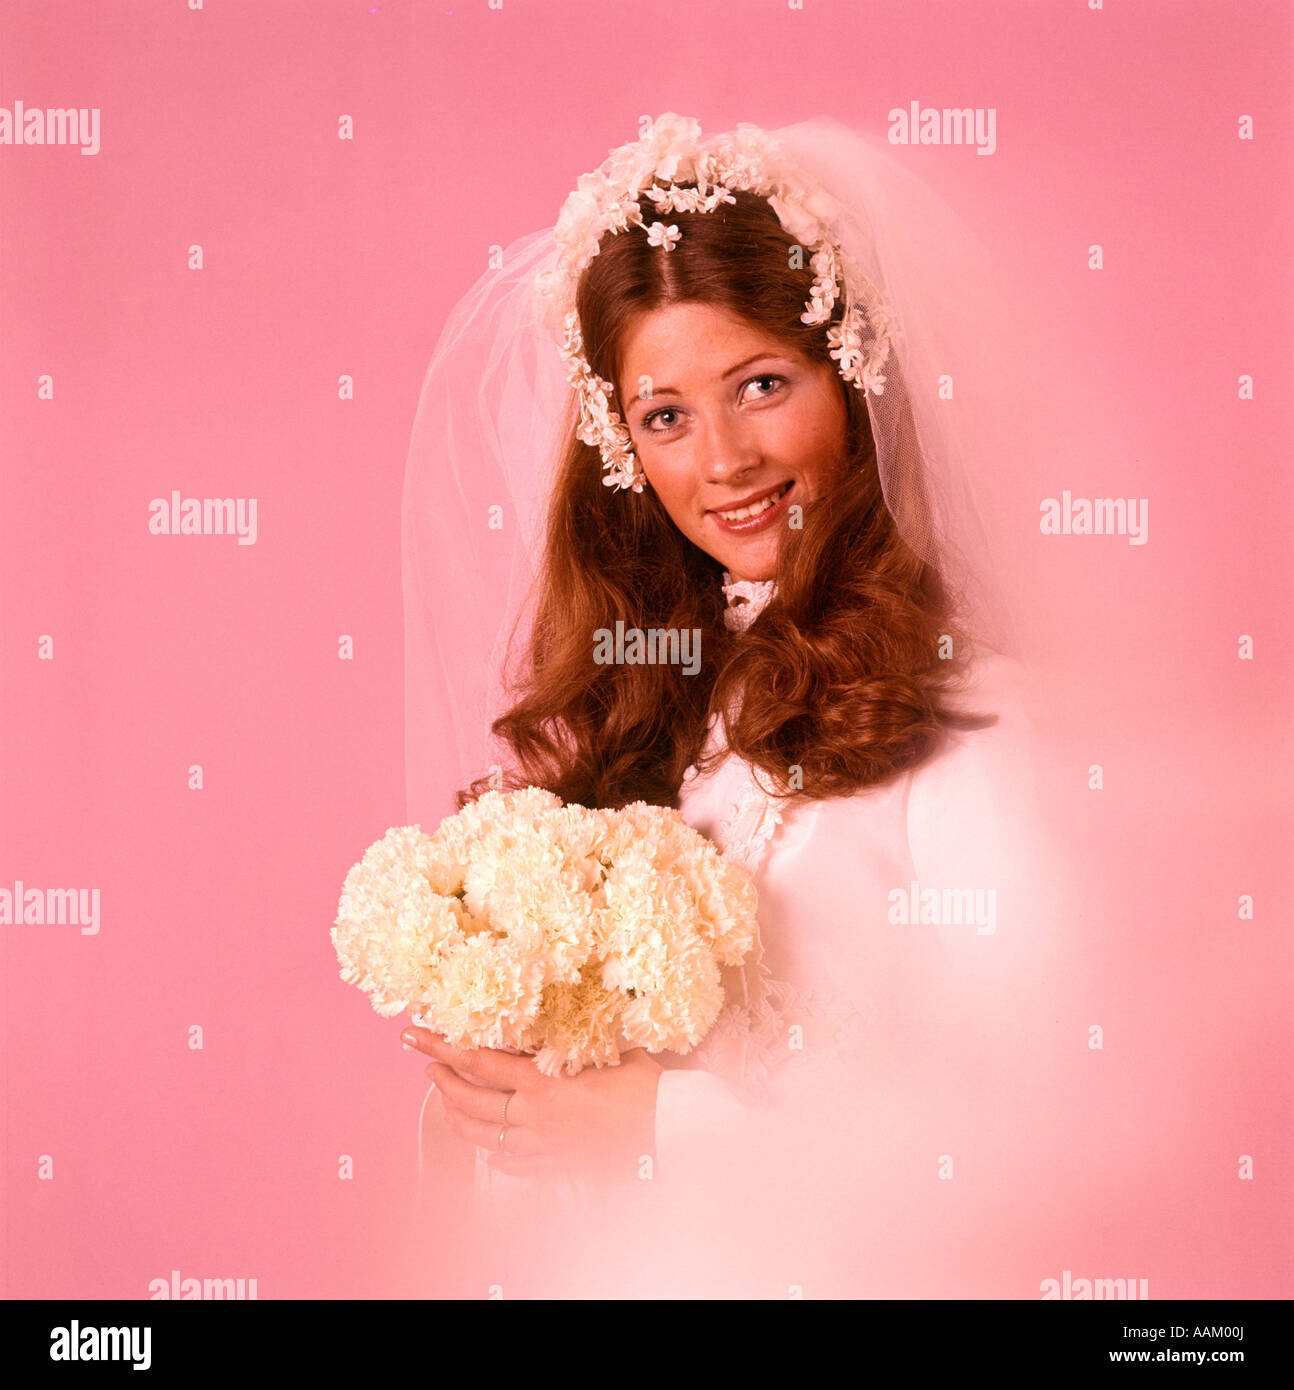 1970s Marriage Stock Photos & 1970s Marriage Stock Images - Alamy